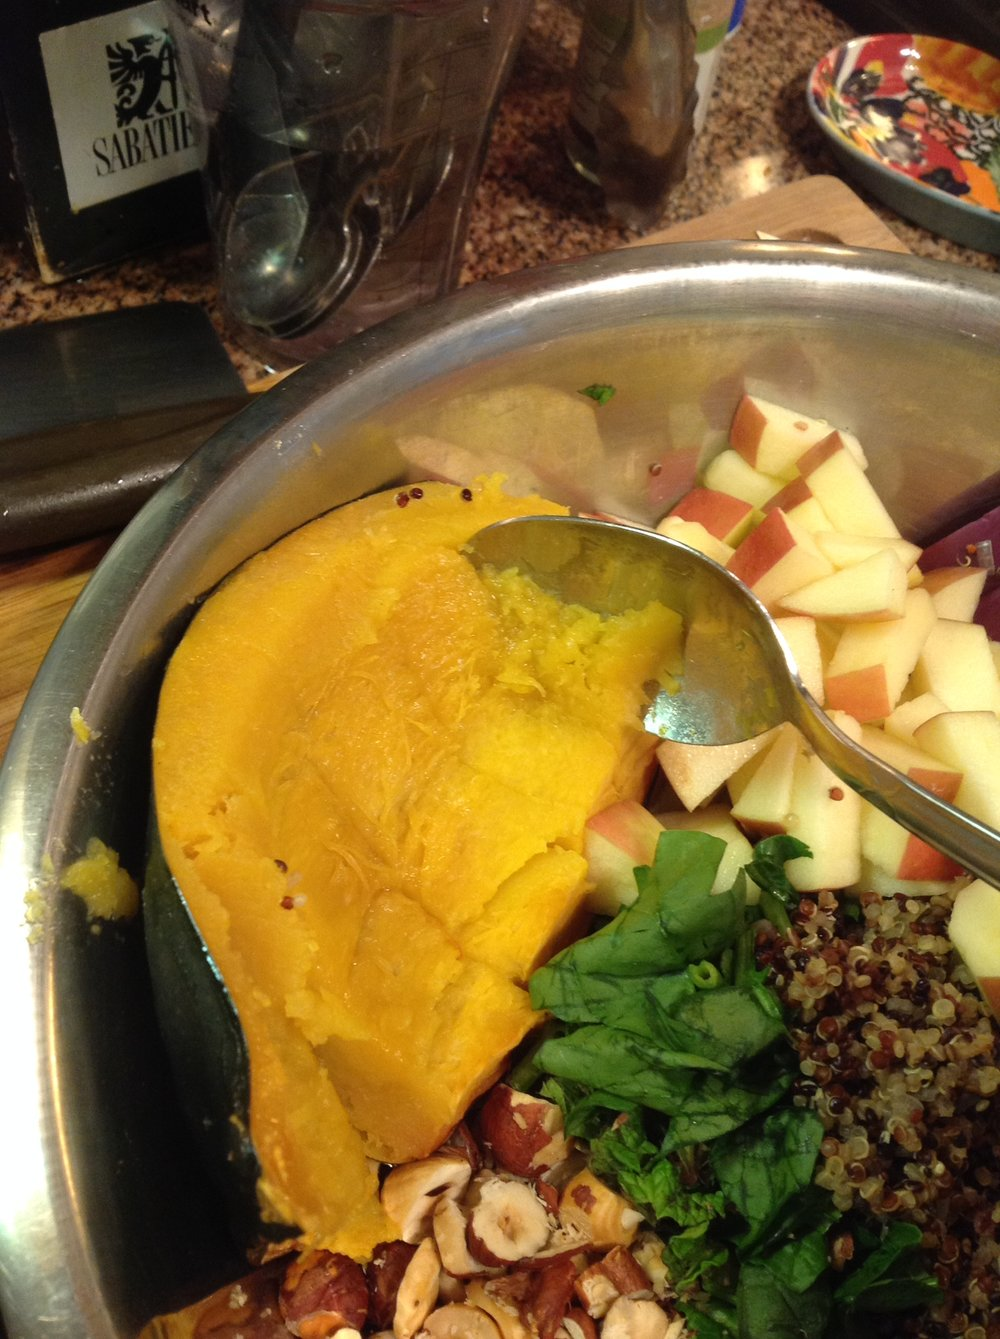 Chef's Healthy Tip: The natural sweetness from the roasted squash will balance the savory flavors of the stuffing